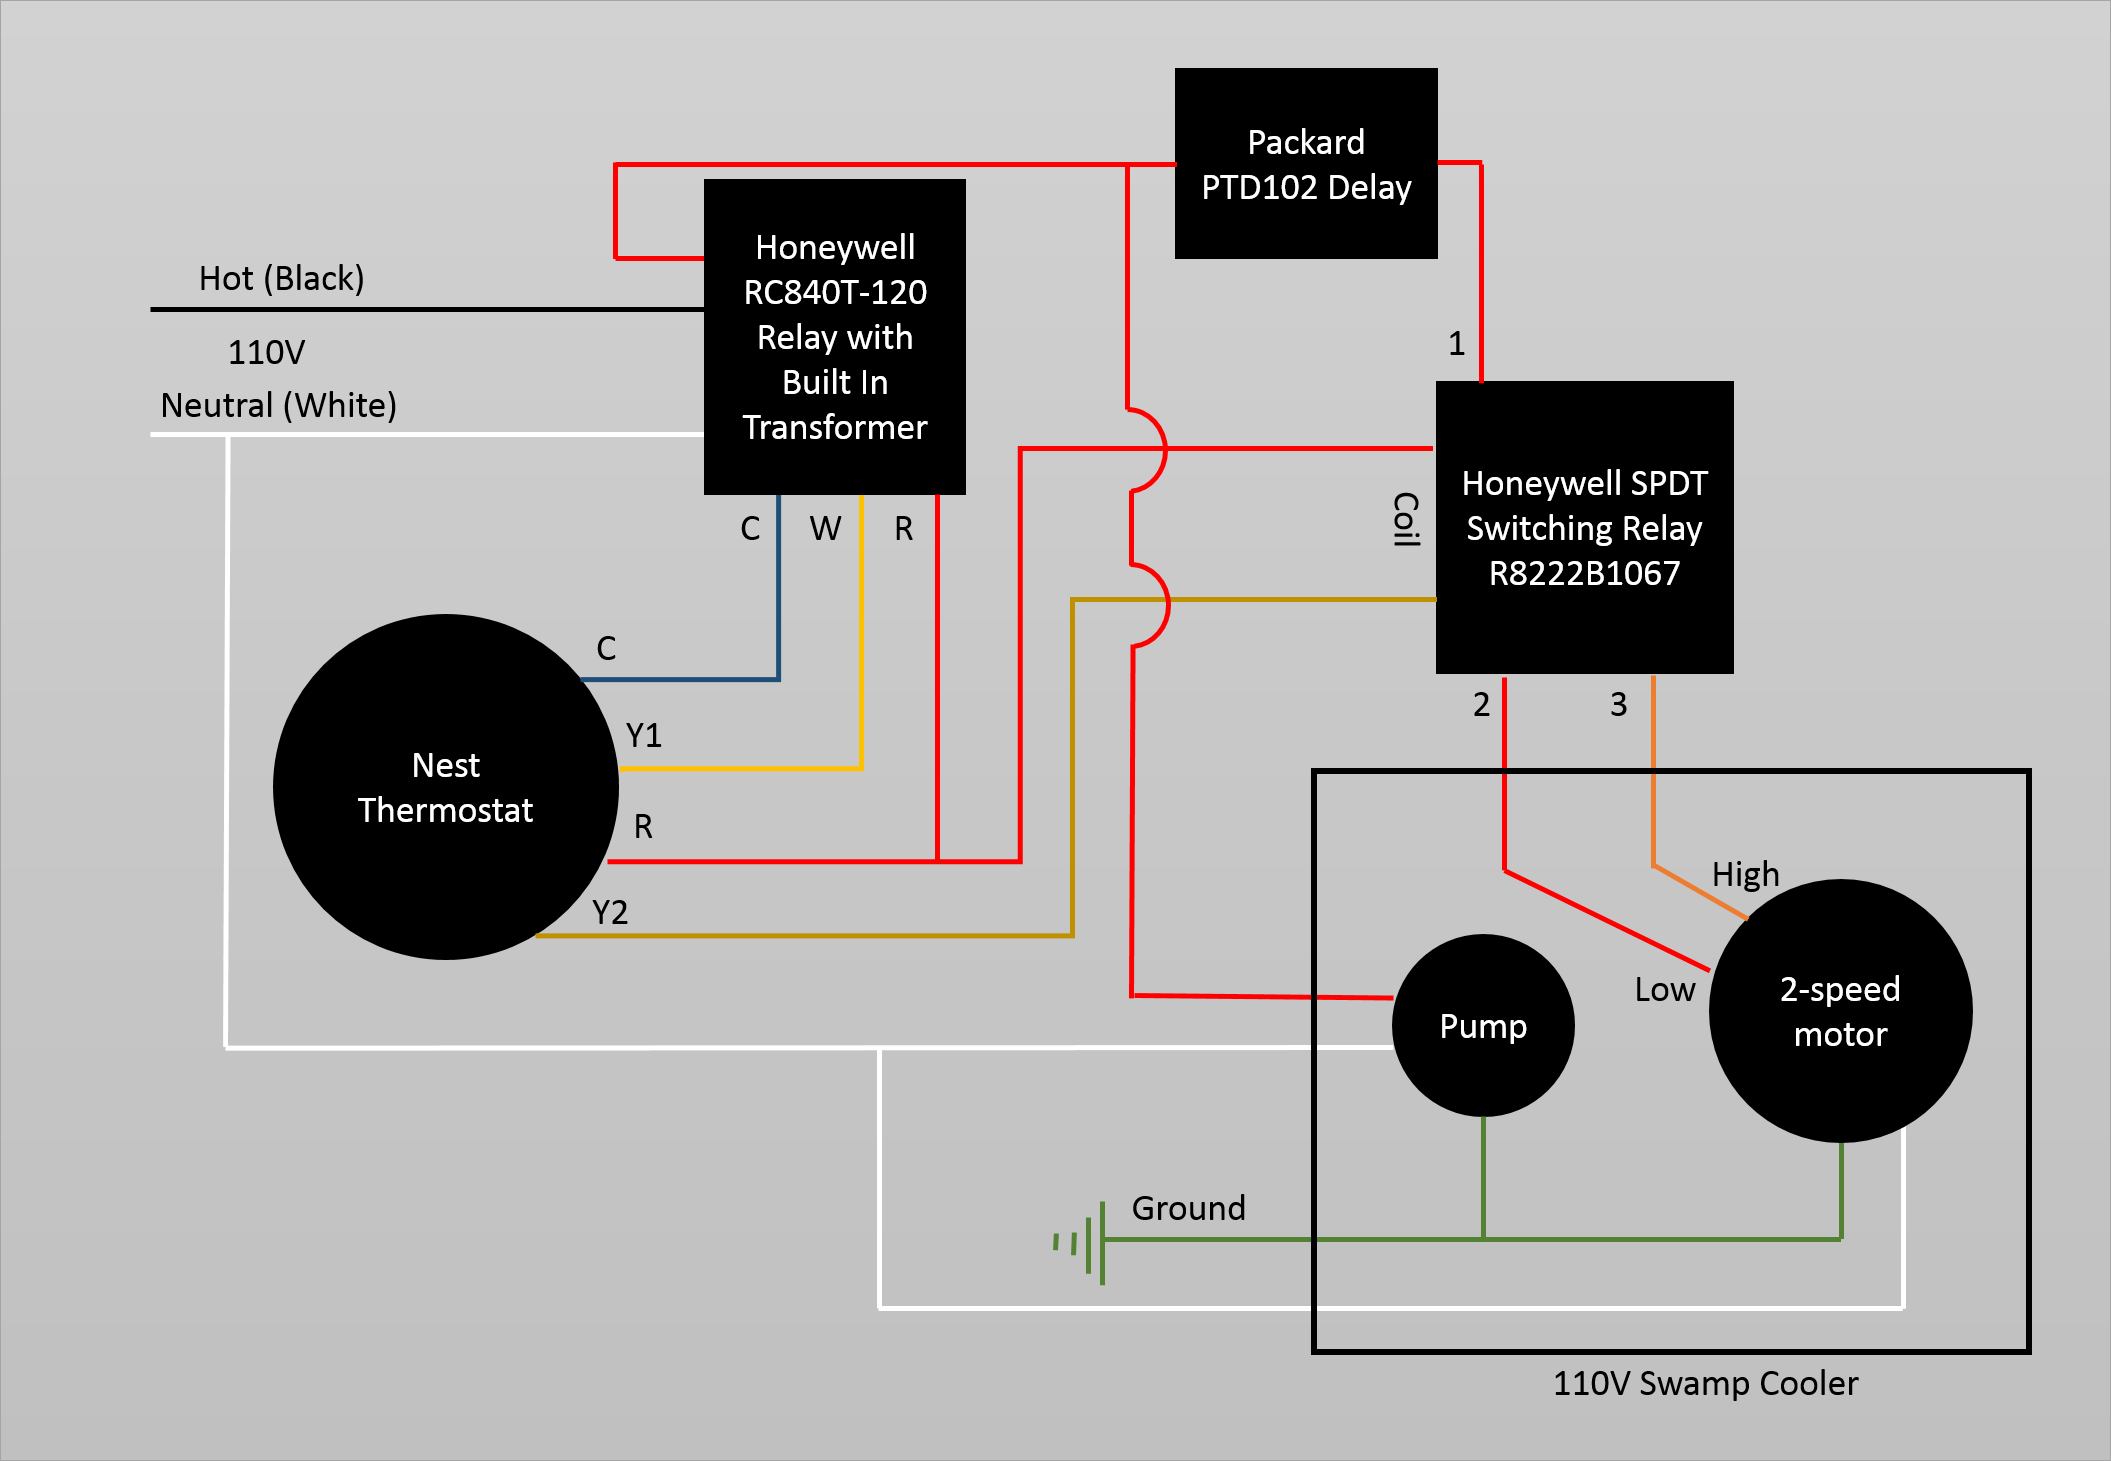 Wiring - Controlling 110V Swamp Cooler Using Nest Thermostat - Home - Wiring Diagram For Nest E